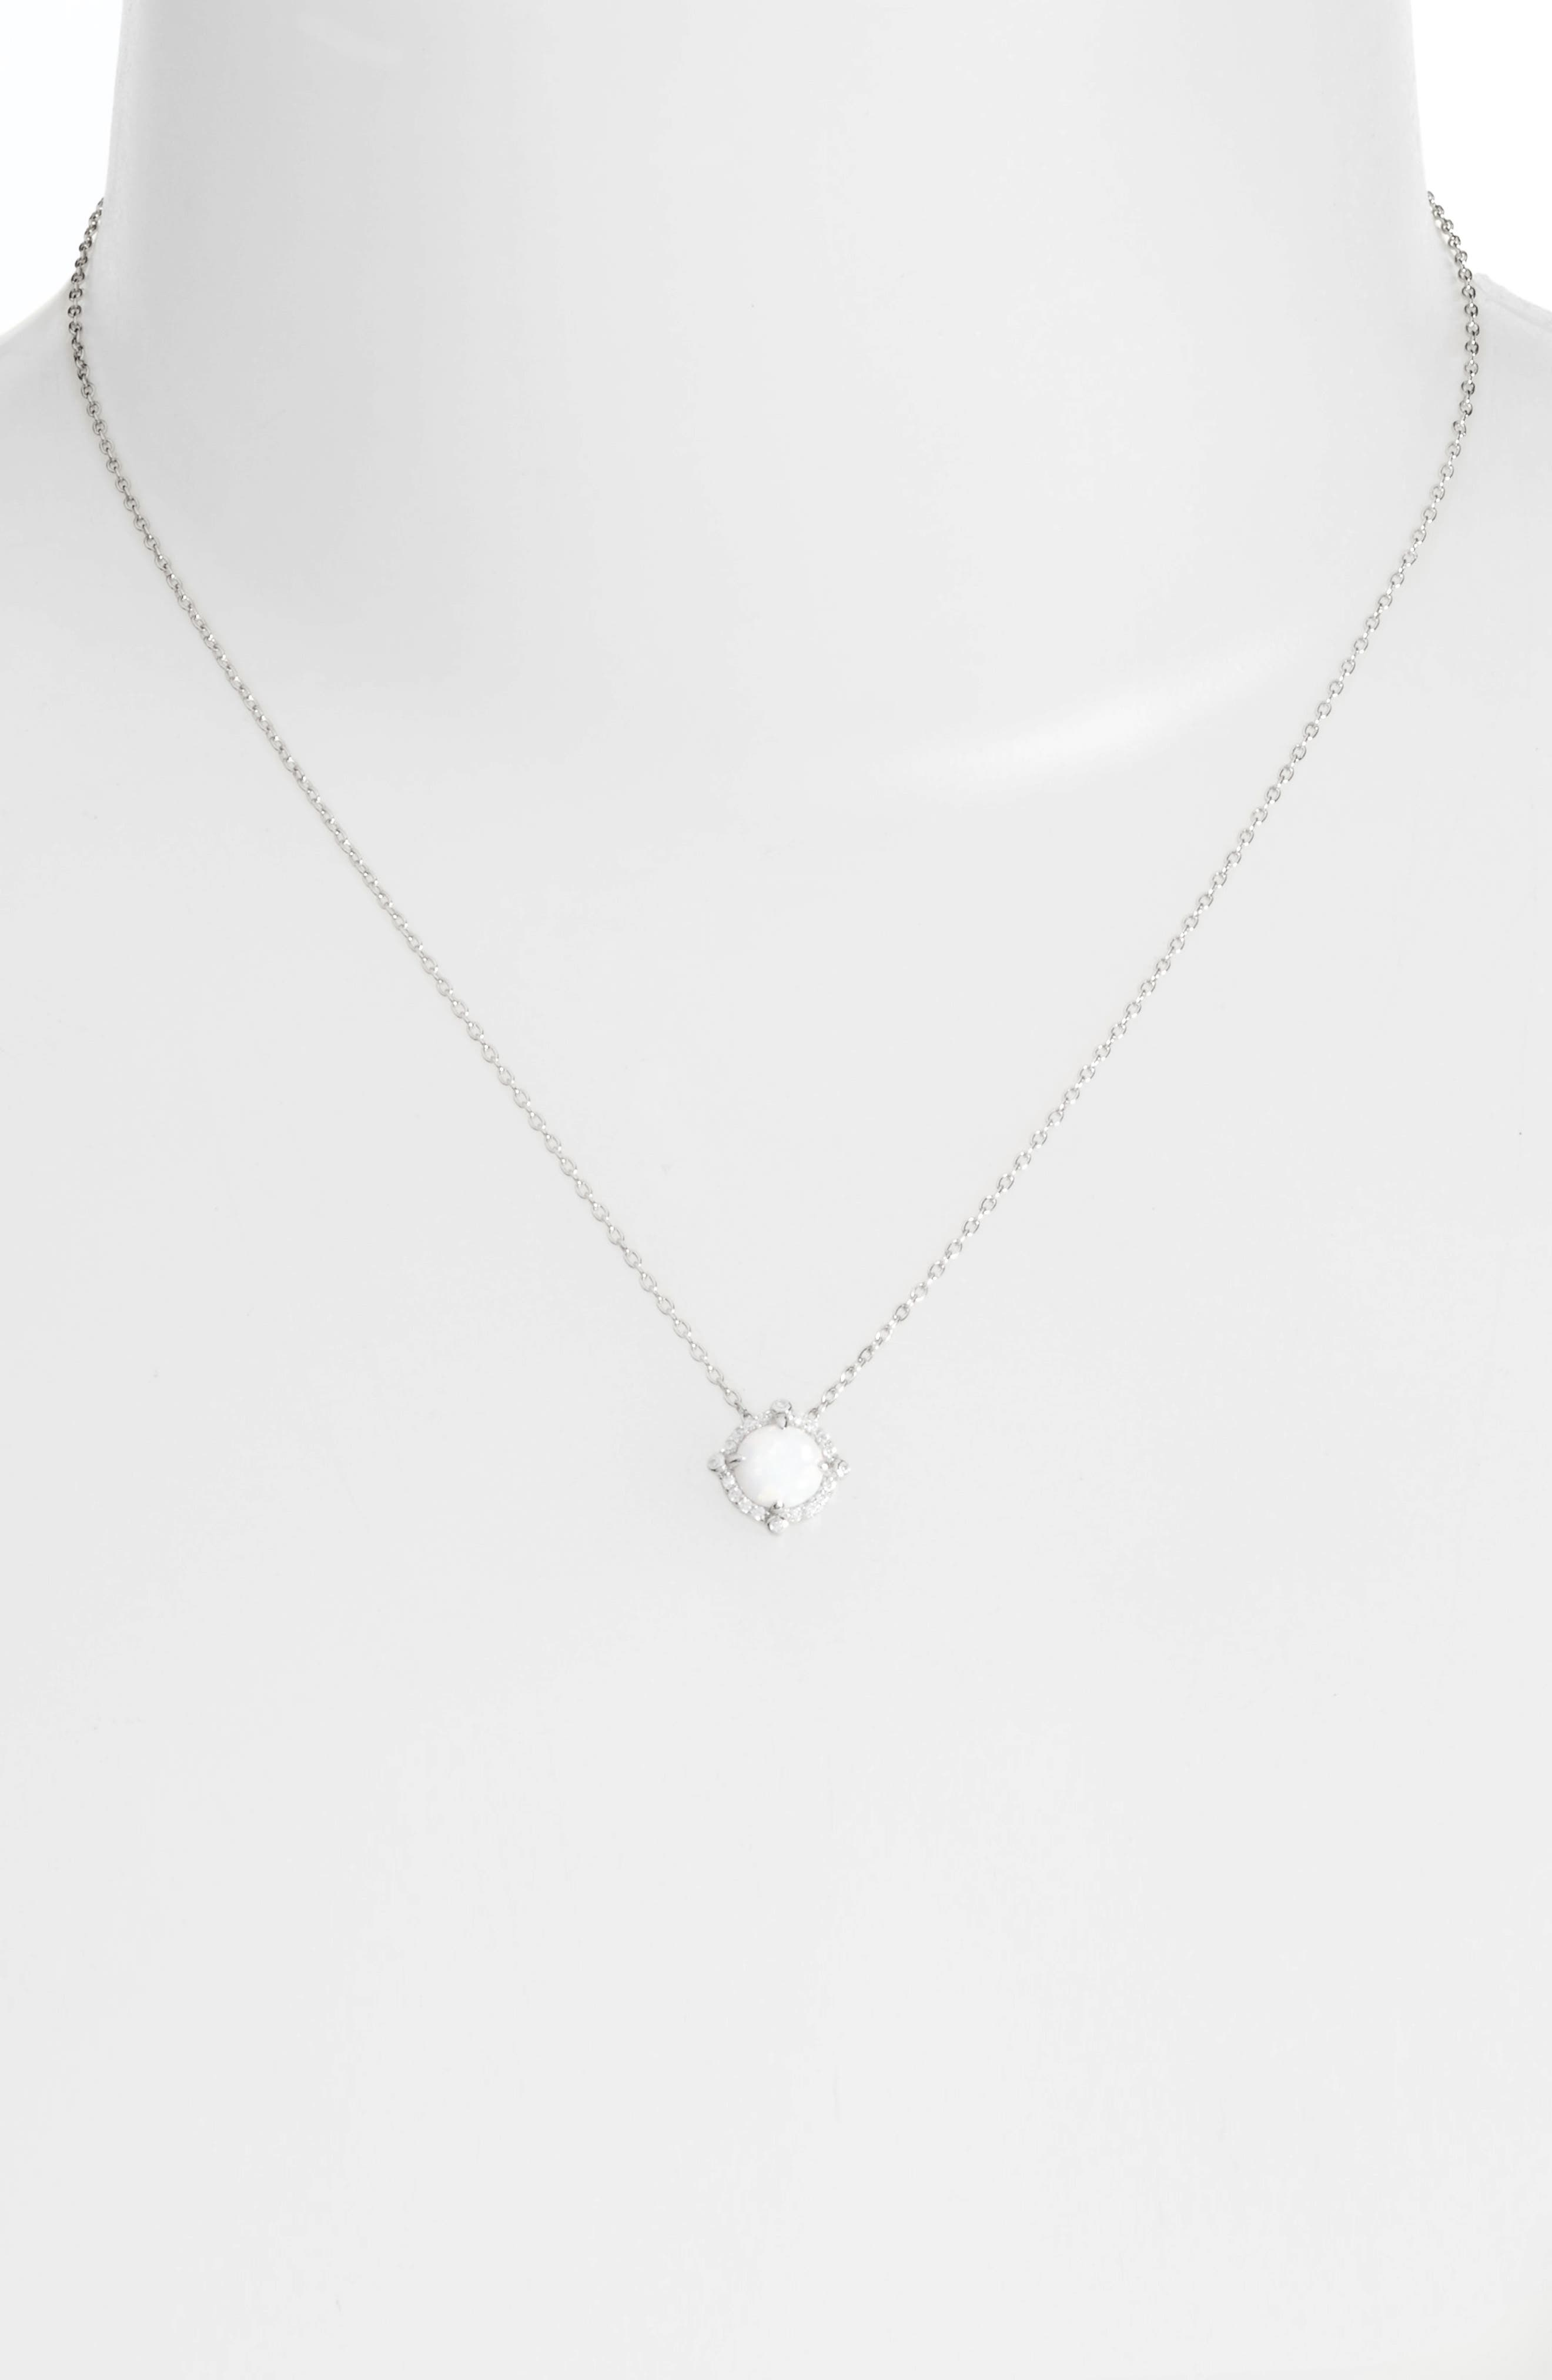 Simulated Diamond & Opal Necklace,                             Alternate thumbnail 2, color,                             Silver/ Opal/ Clear